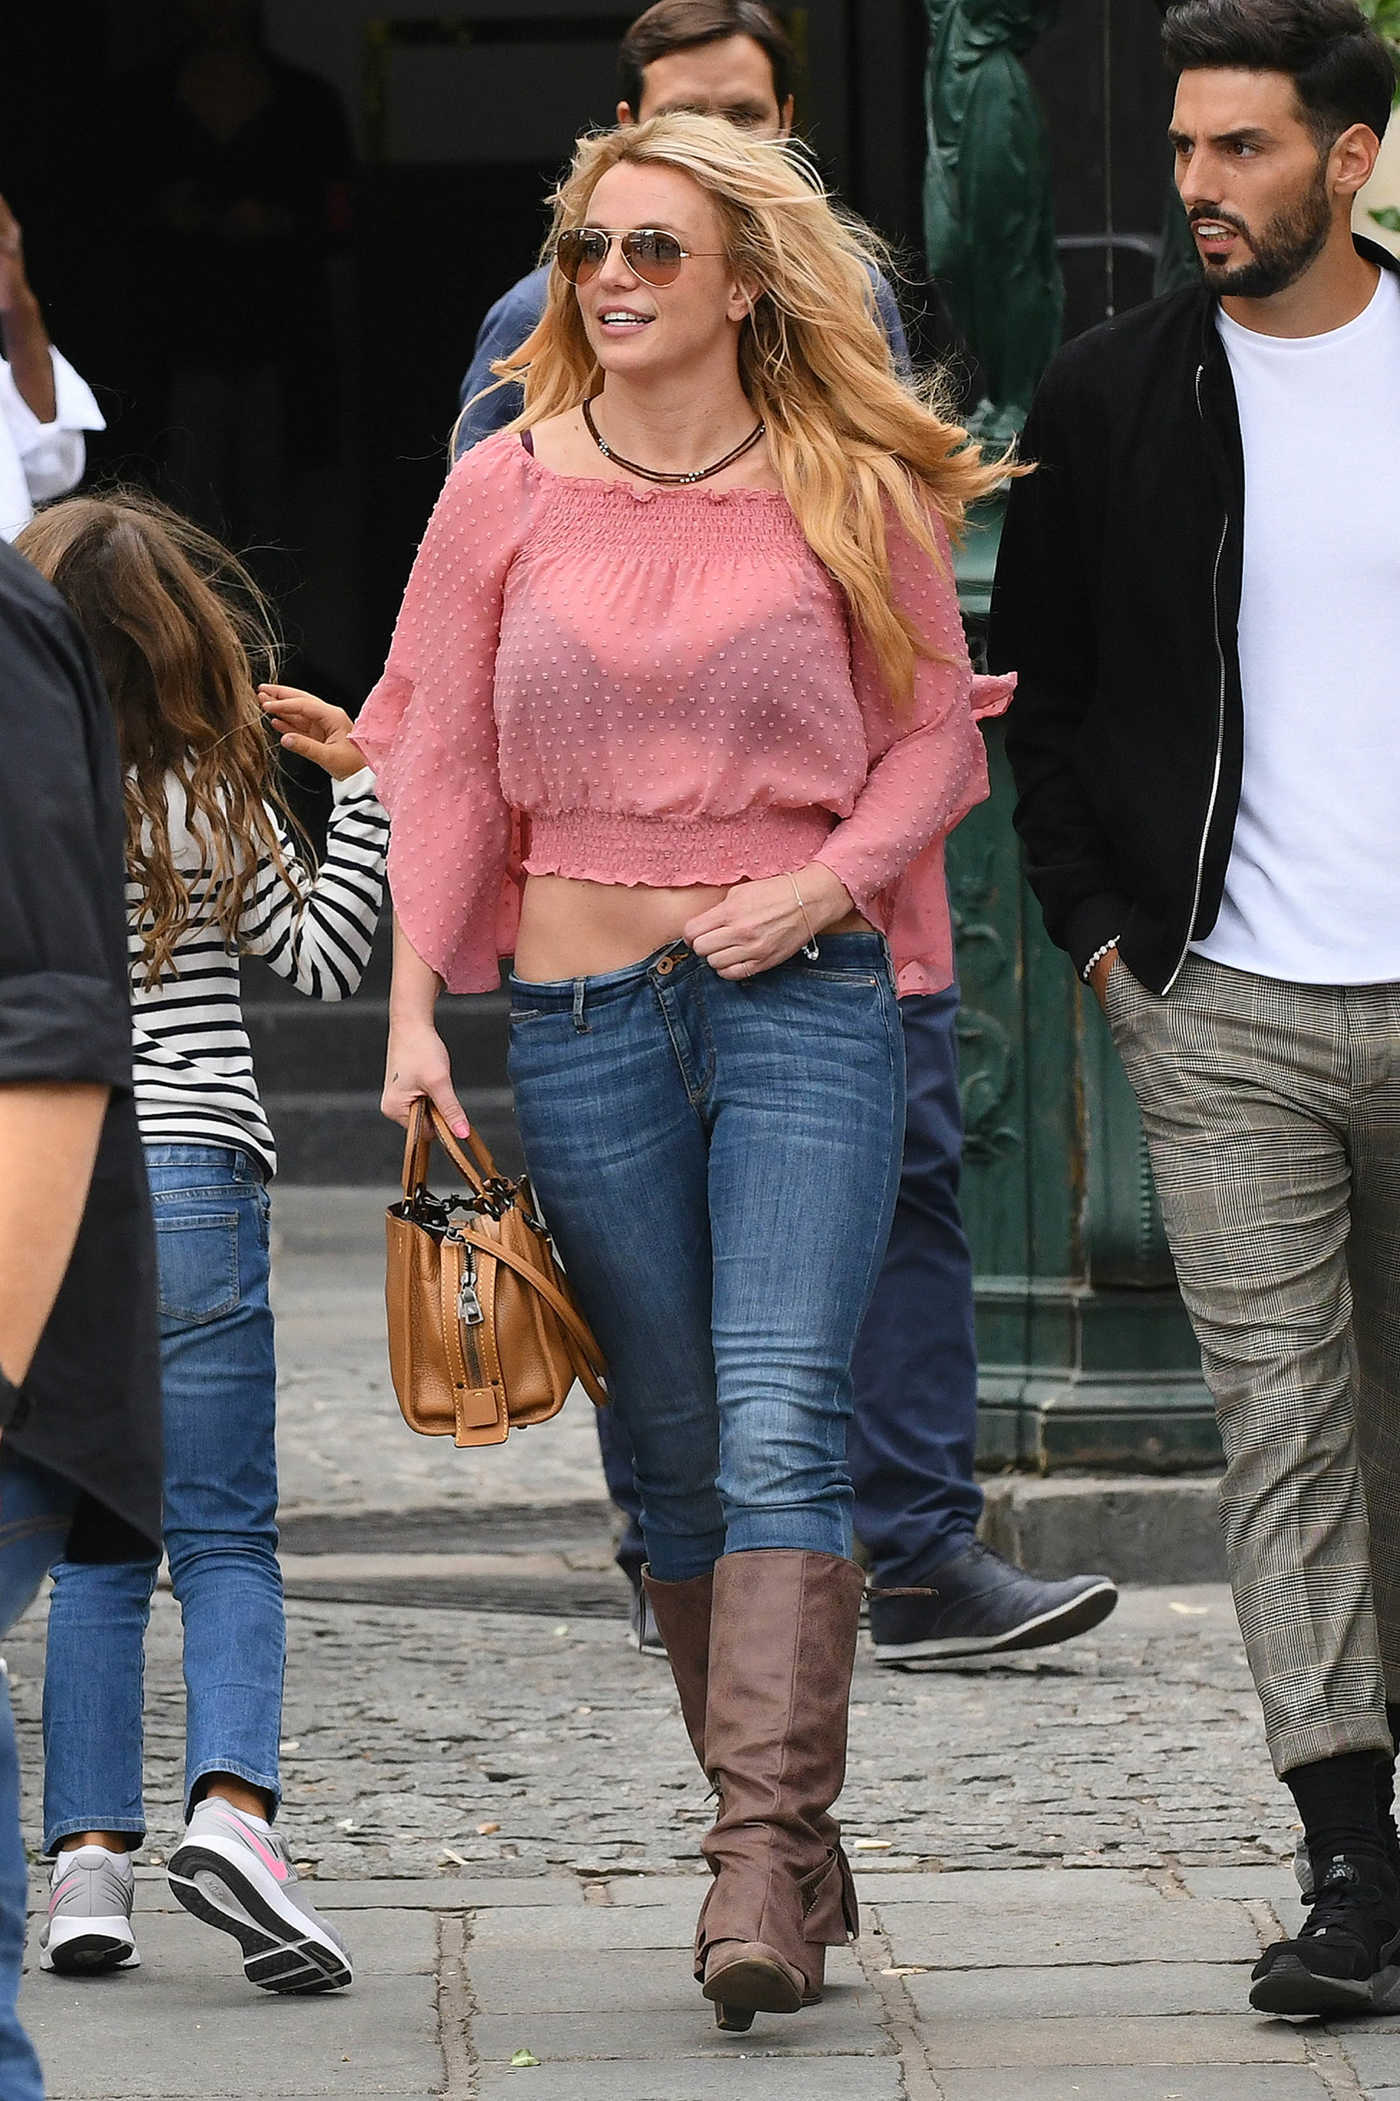 Britney Spears in a Pink Blouse Leaves La Society Restaurant in Saint Germain Area in Paris 08/27/2018